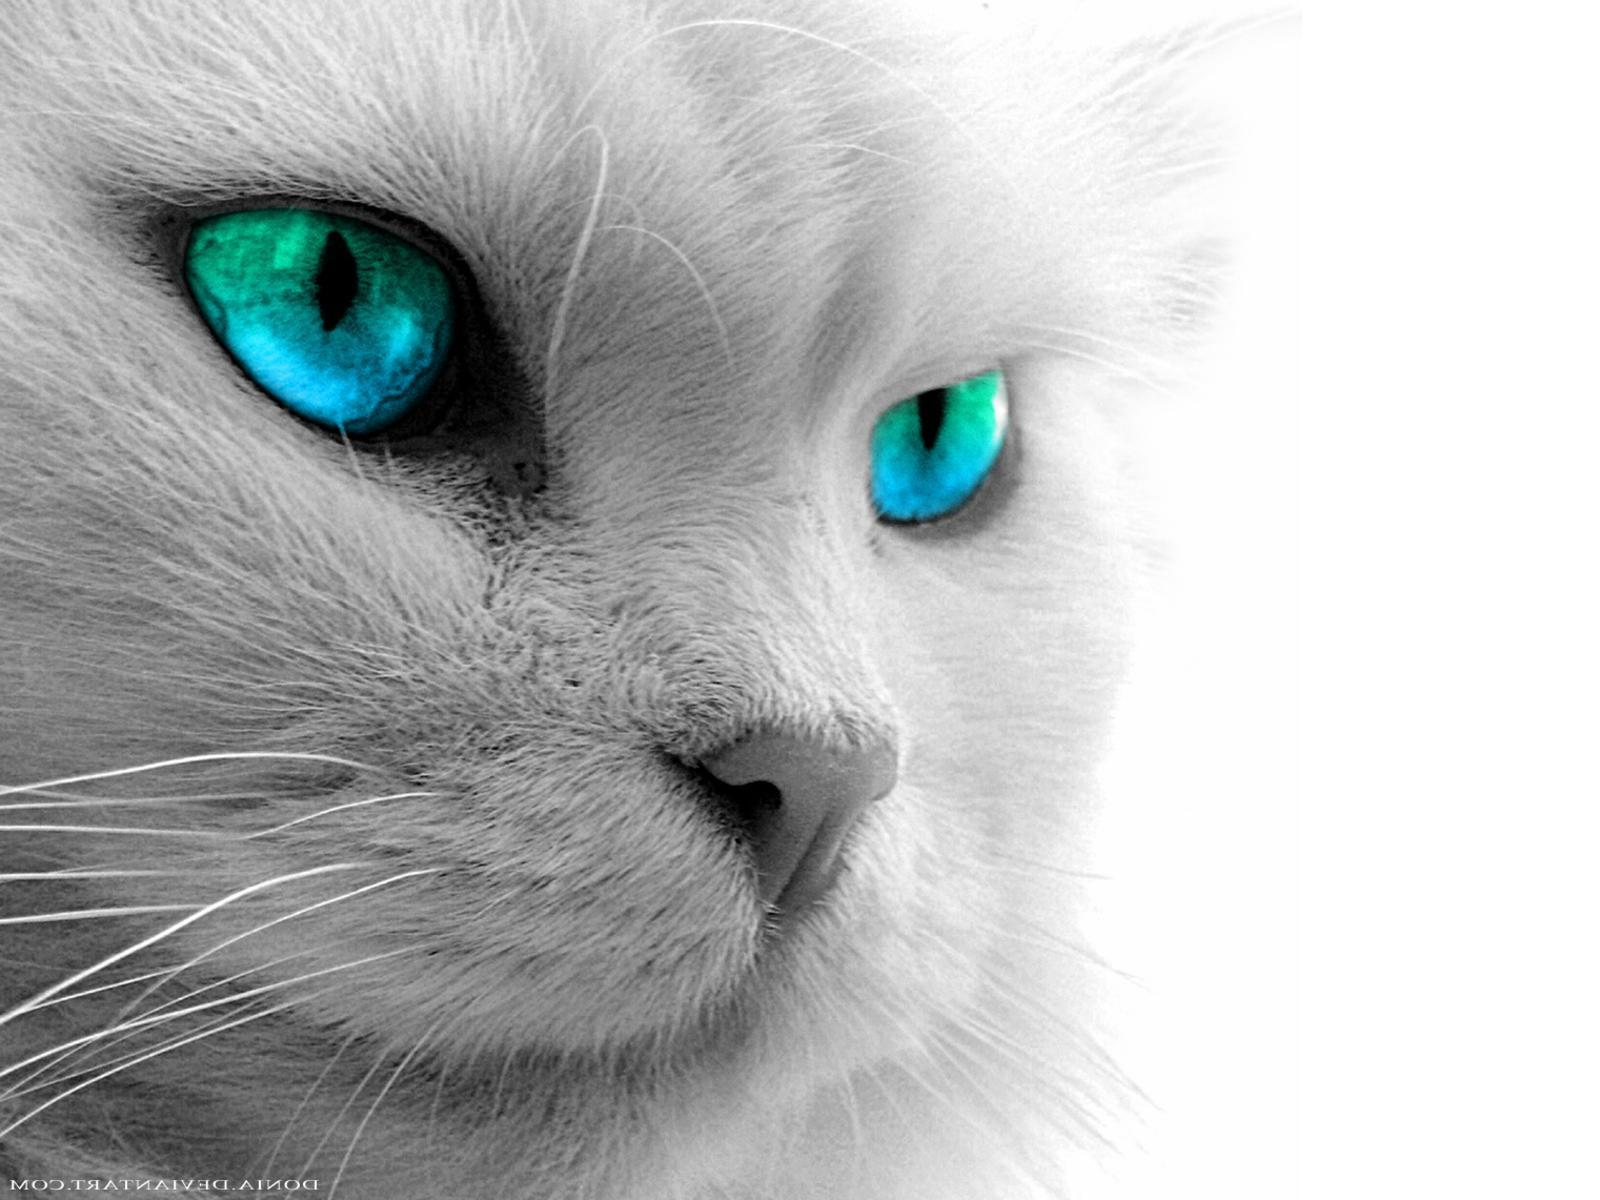 Anime Manga Guys Black Cat Eyes Wallpapers Blue Cat Eyes Yellow